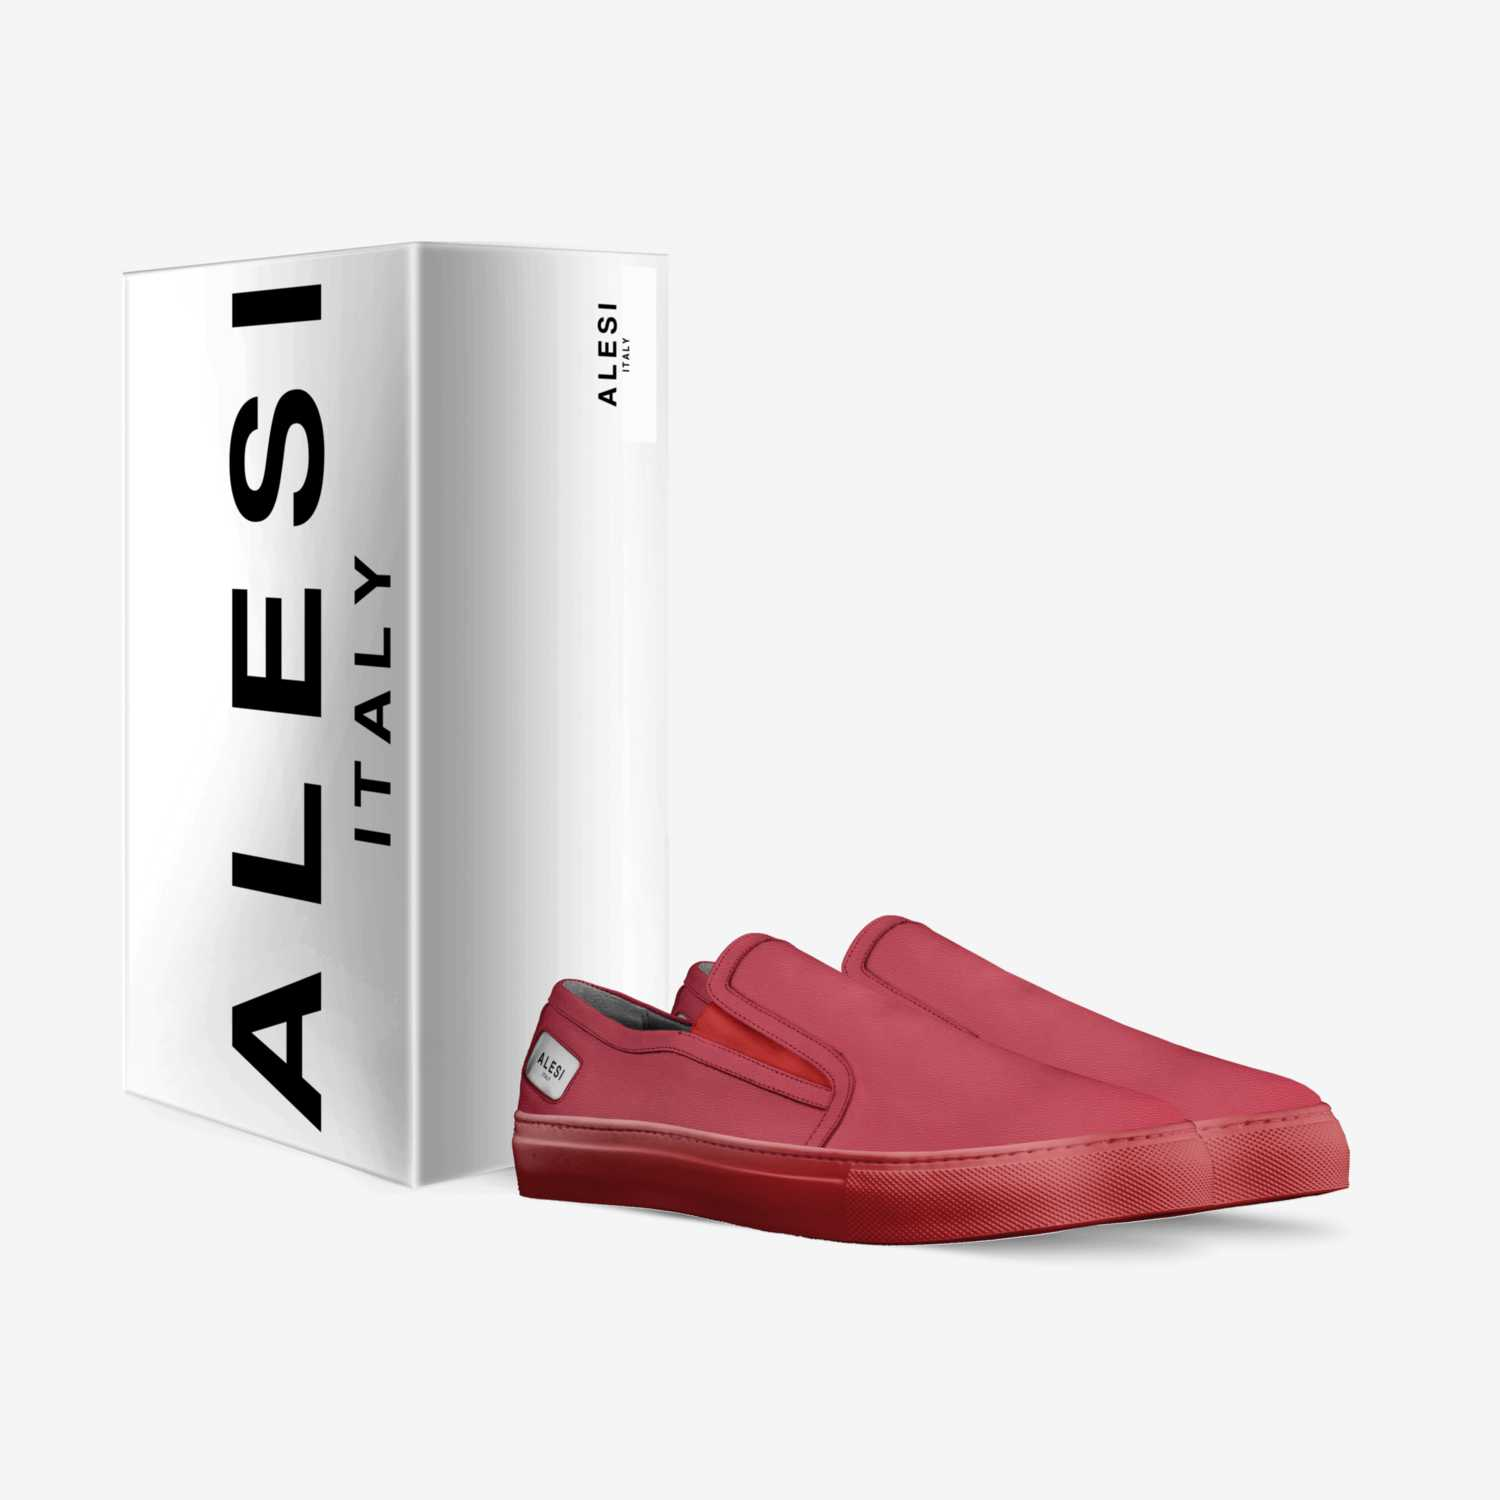 Alesi Slide custom made in Italy shoes by Lonanthony Parker | Box view